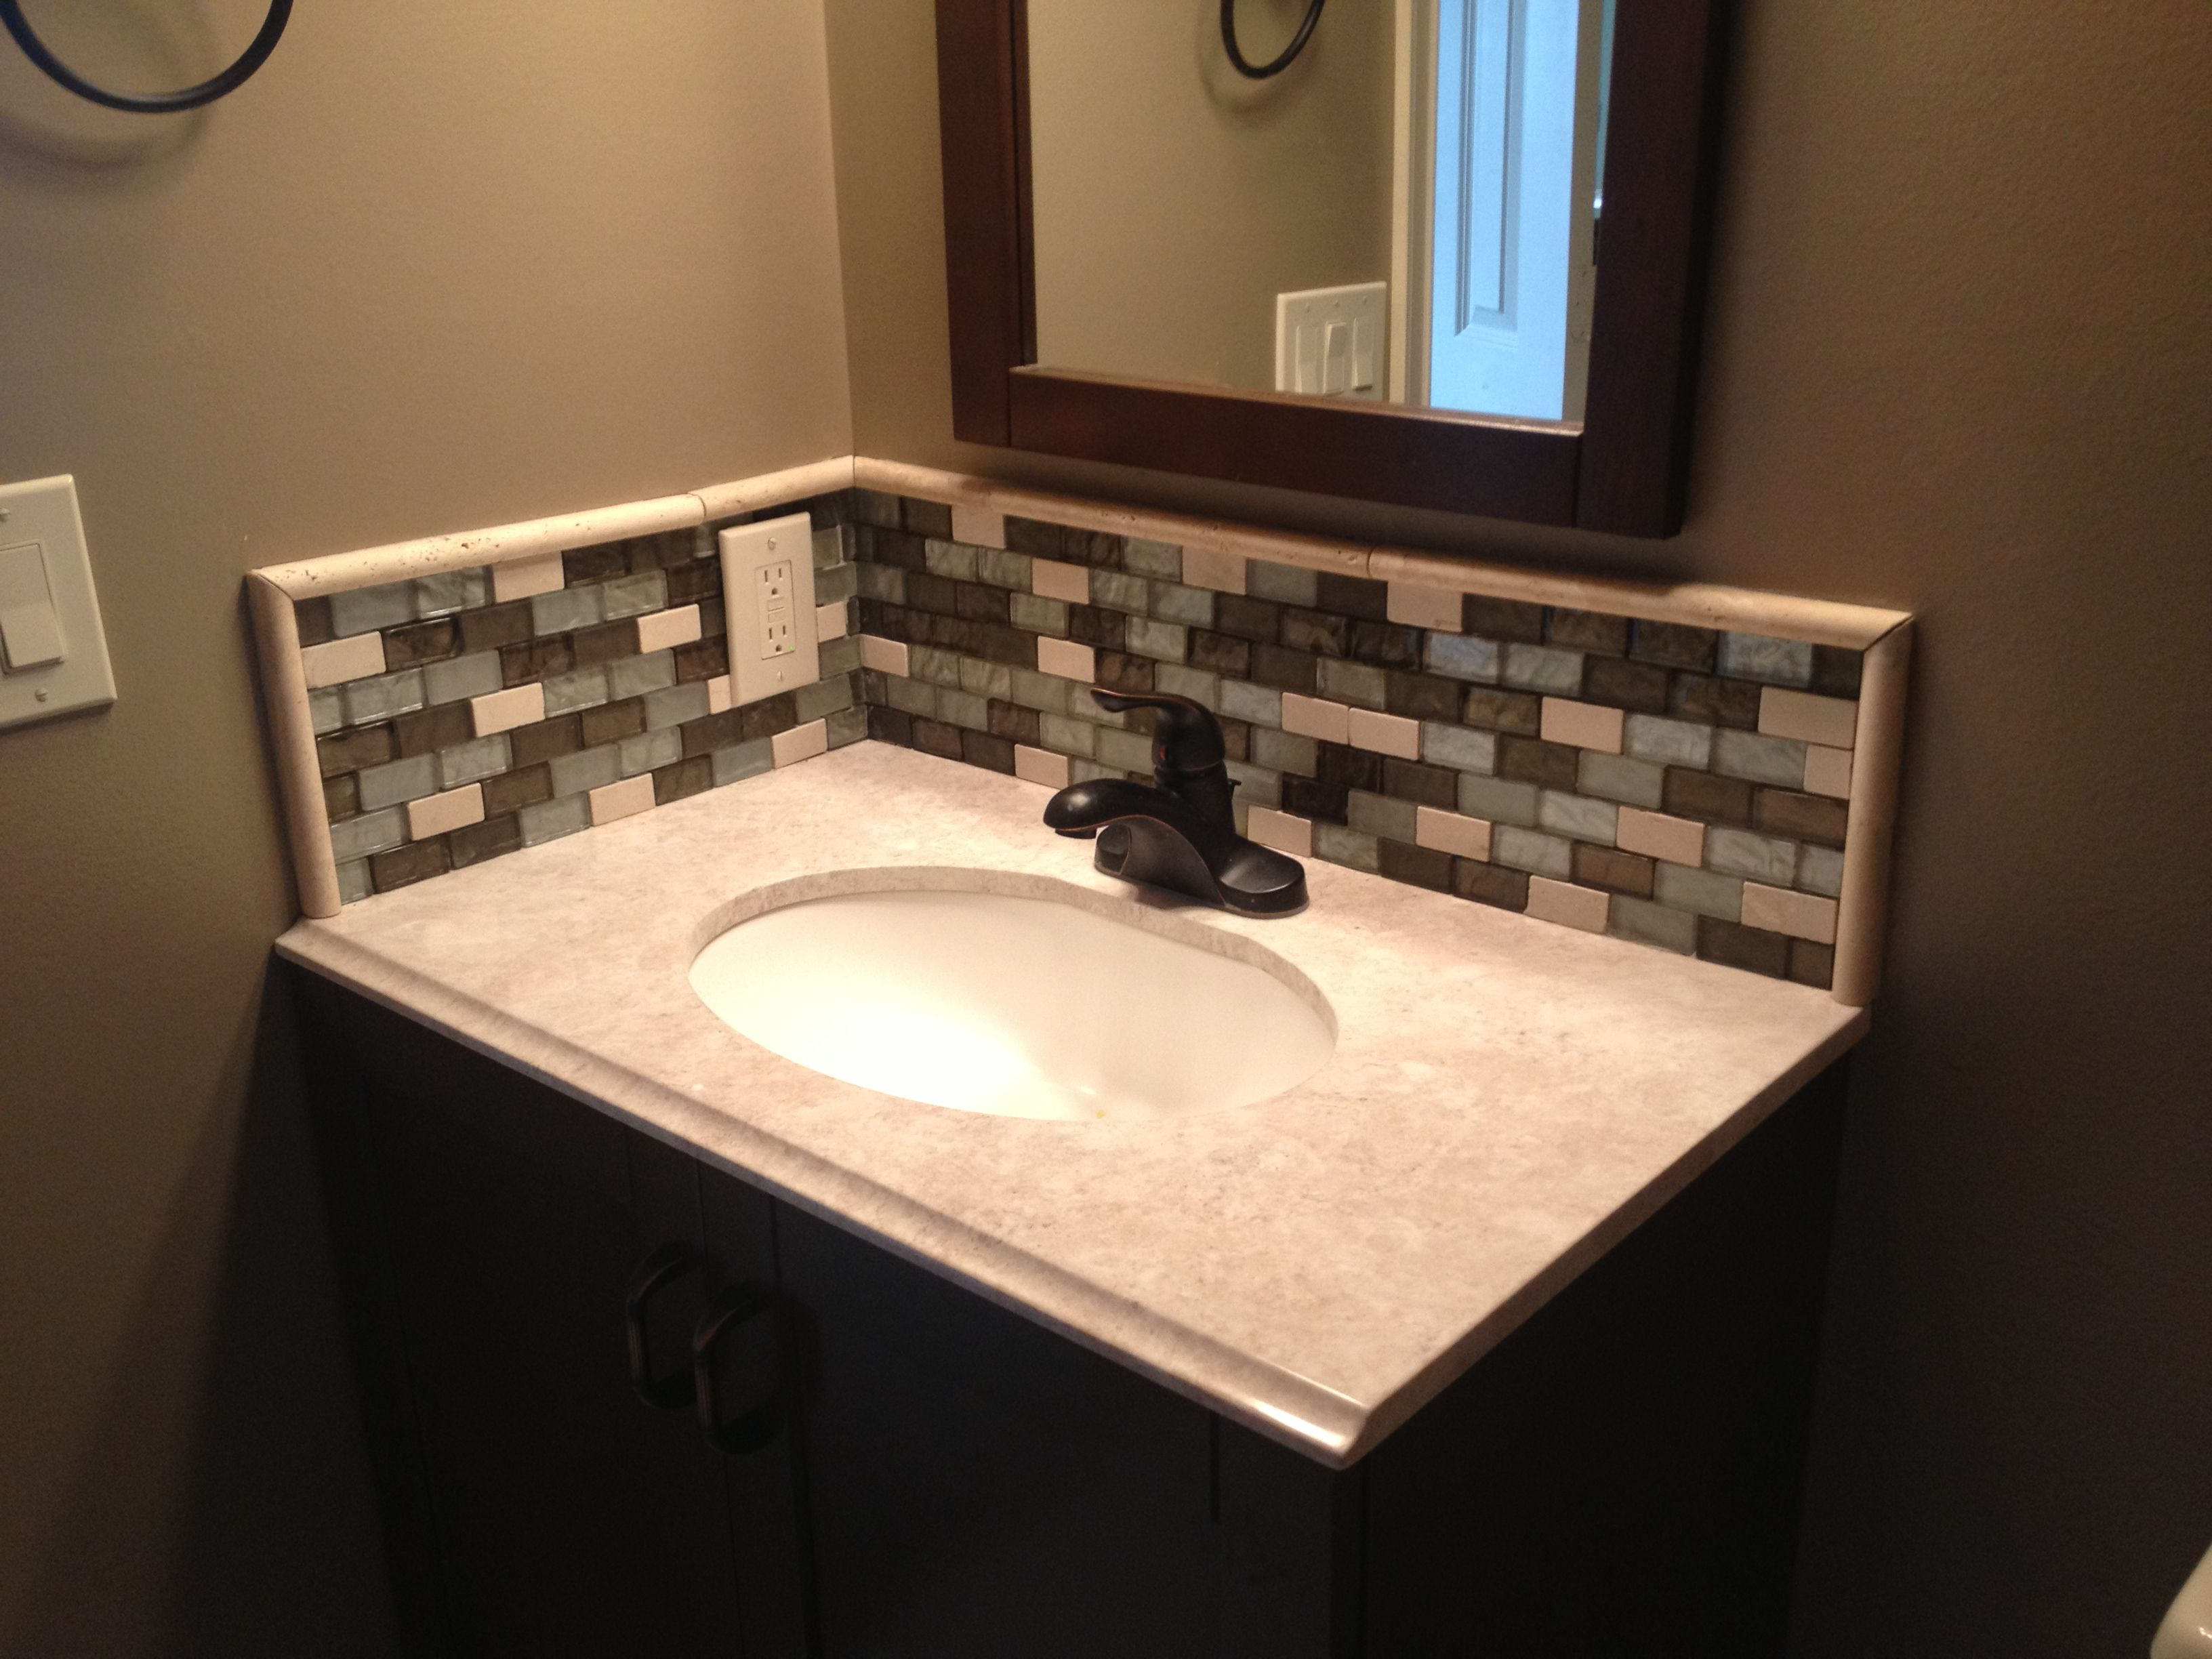 Pin by Chris t on ensuite reno | Pinterest | Undermount sink ...